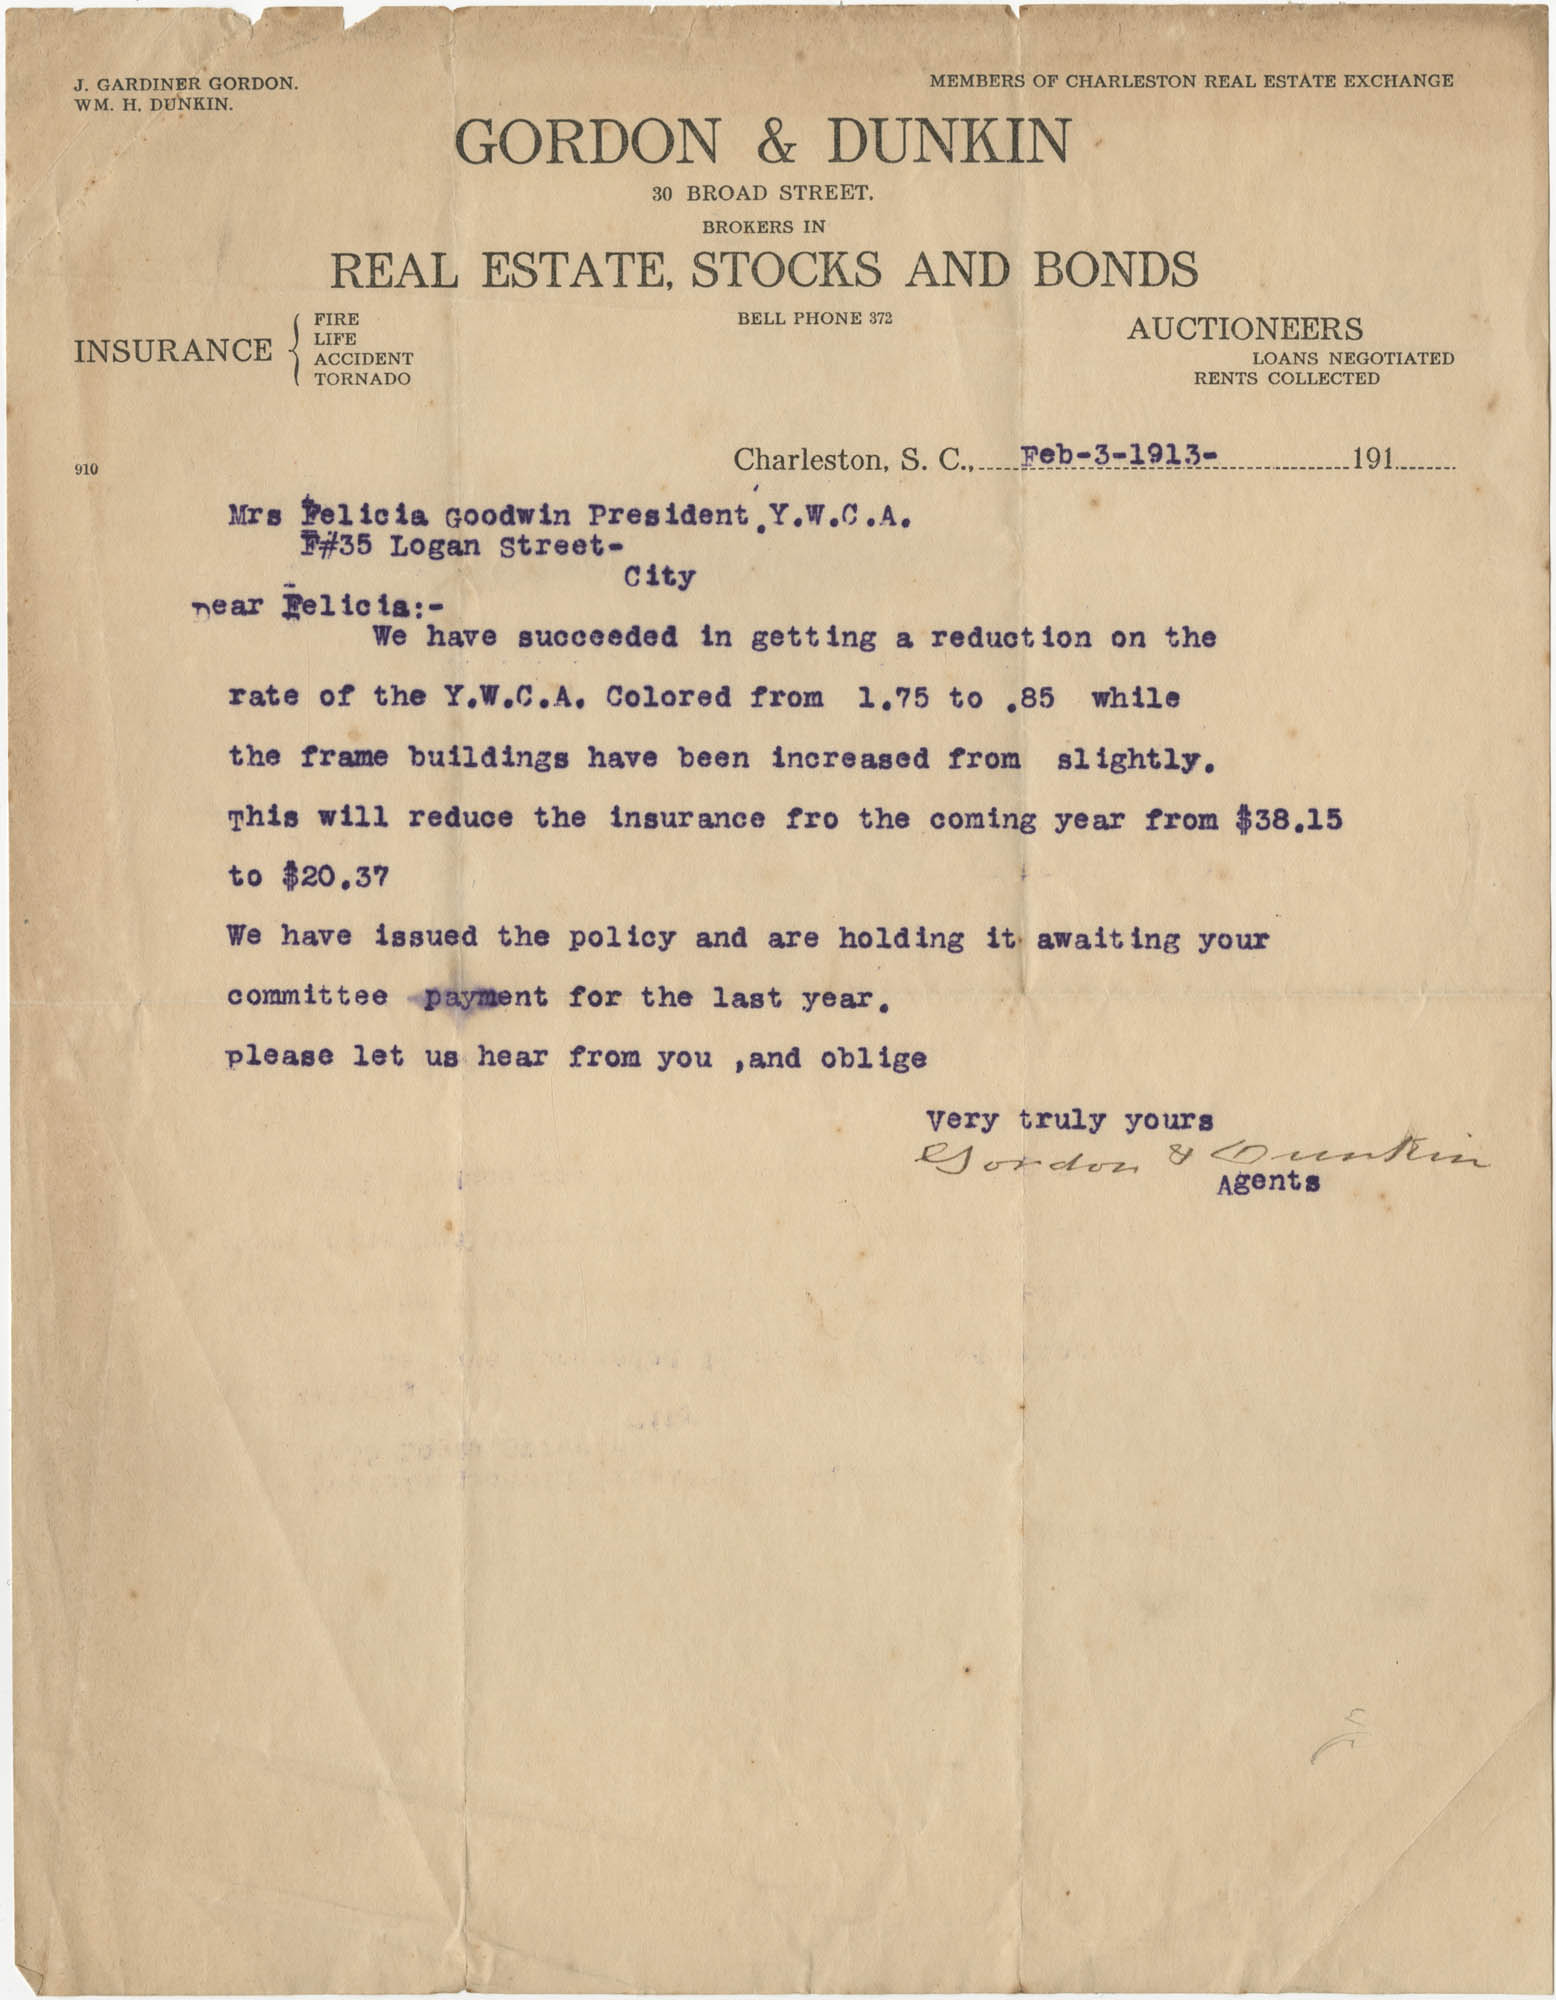 Letter from J. Gardiner Gordon and William H. Dunkin to Felicia Goodwin, February 3, 1913